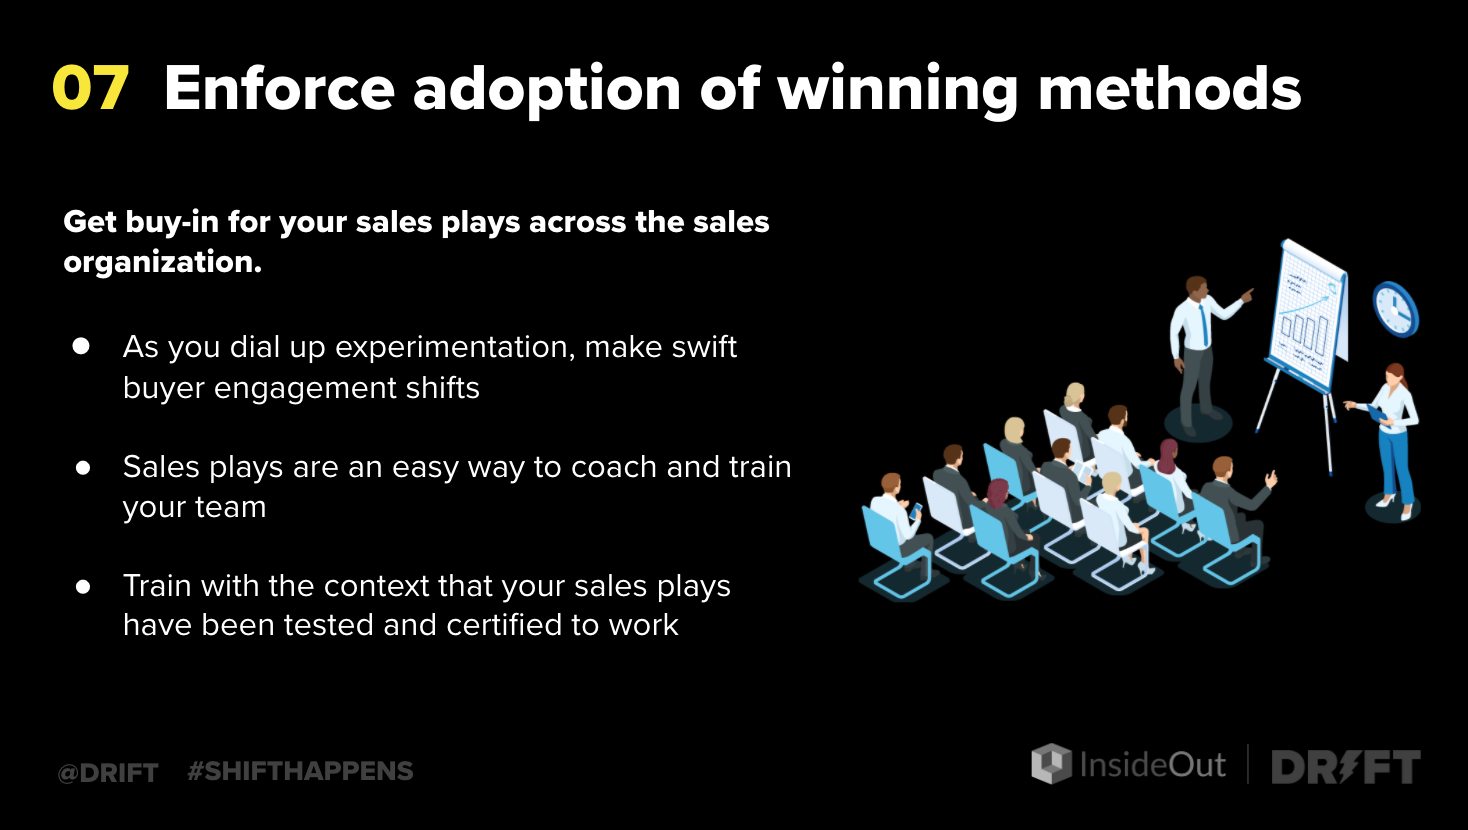 improve sales performance to win